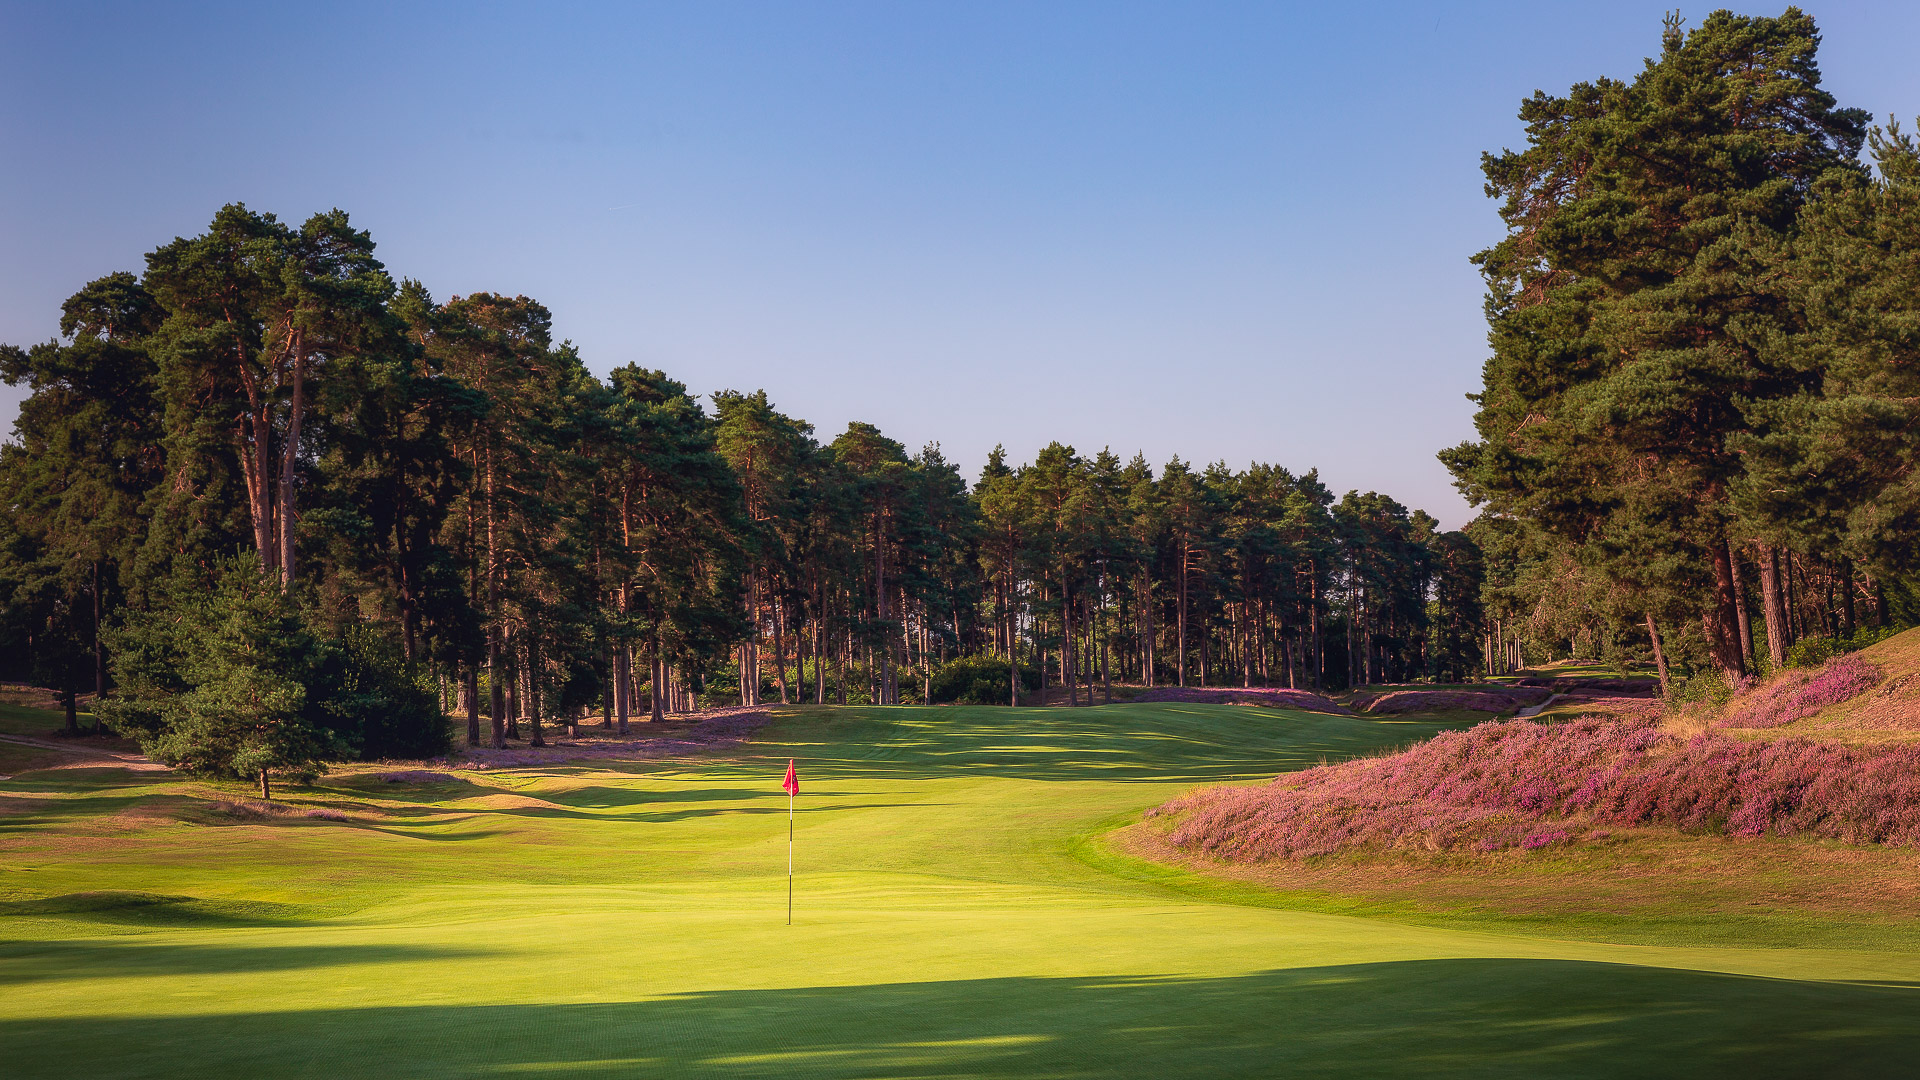 17th-Hole-St-Georges-Hill-Golf-Club-2400-Edit